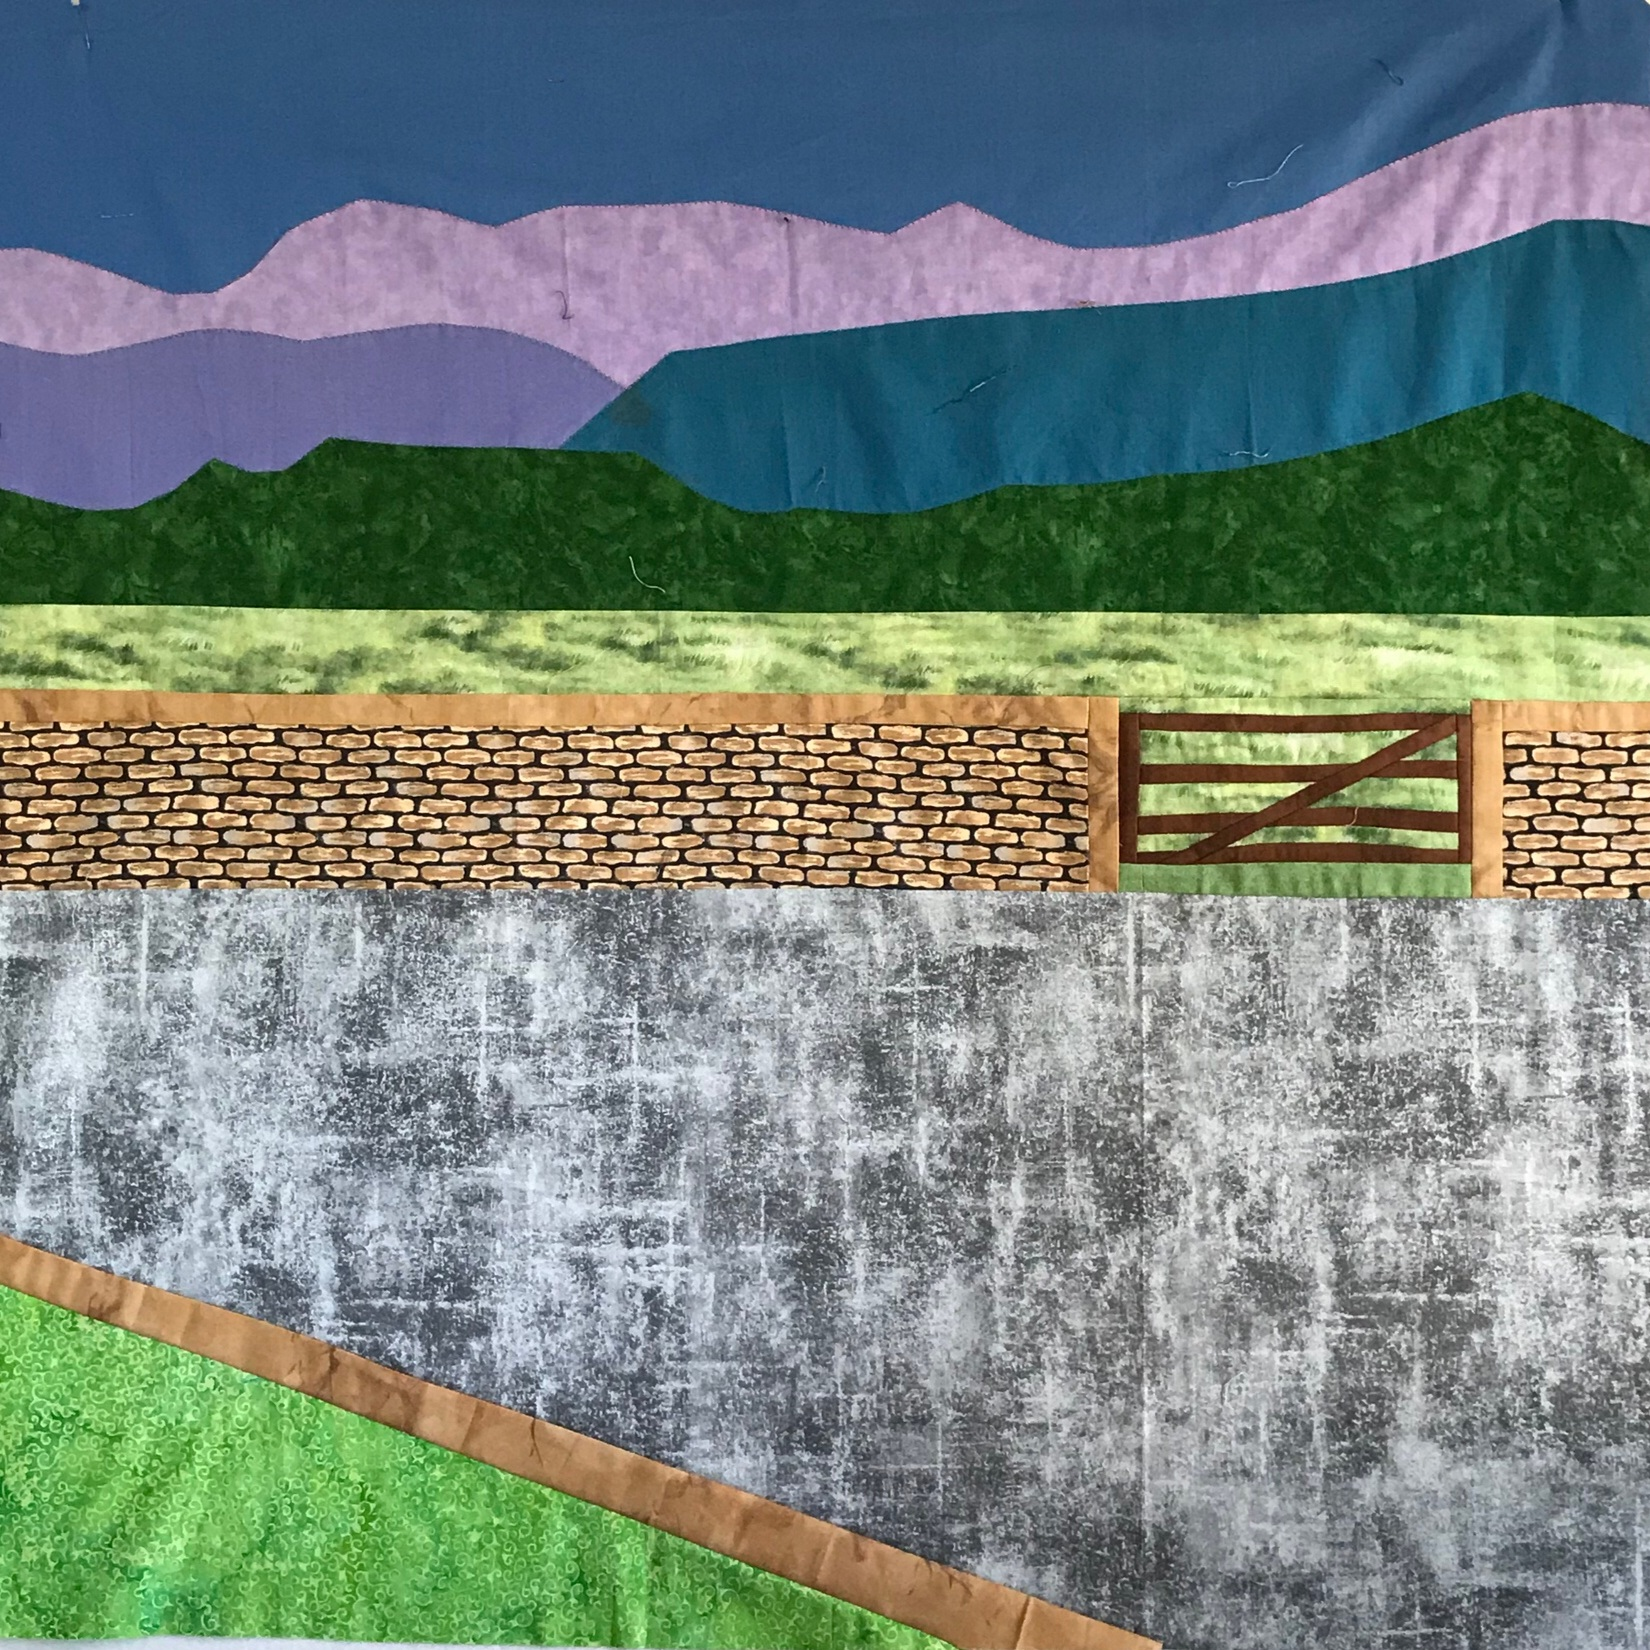 background with mountains, wall and gate